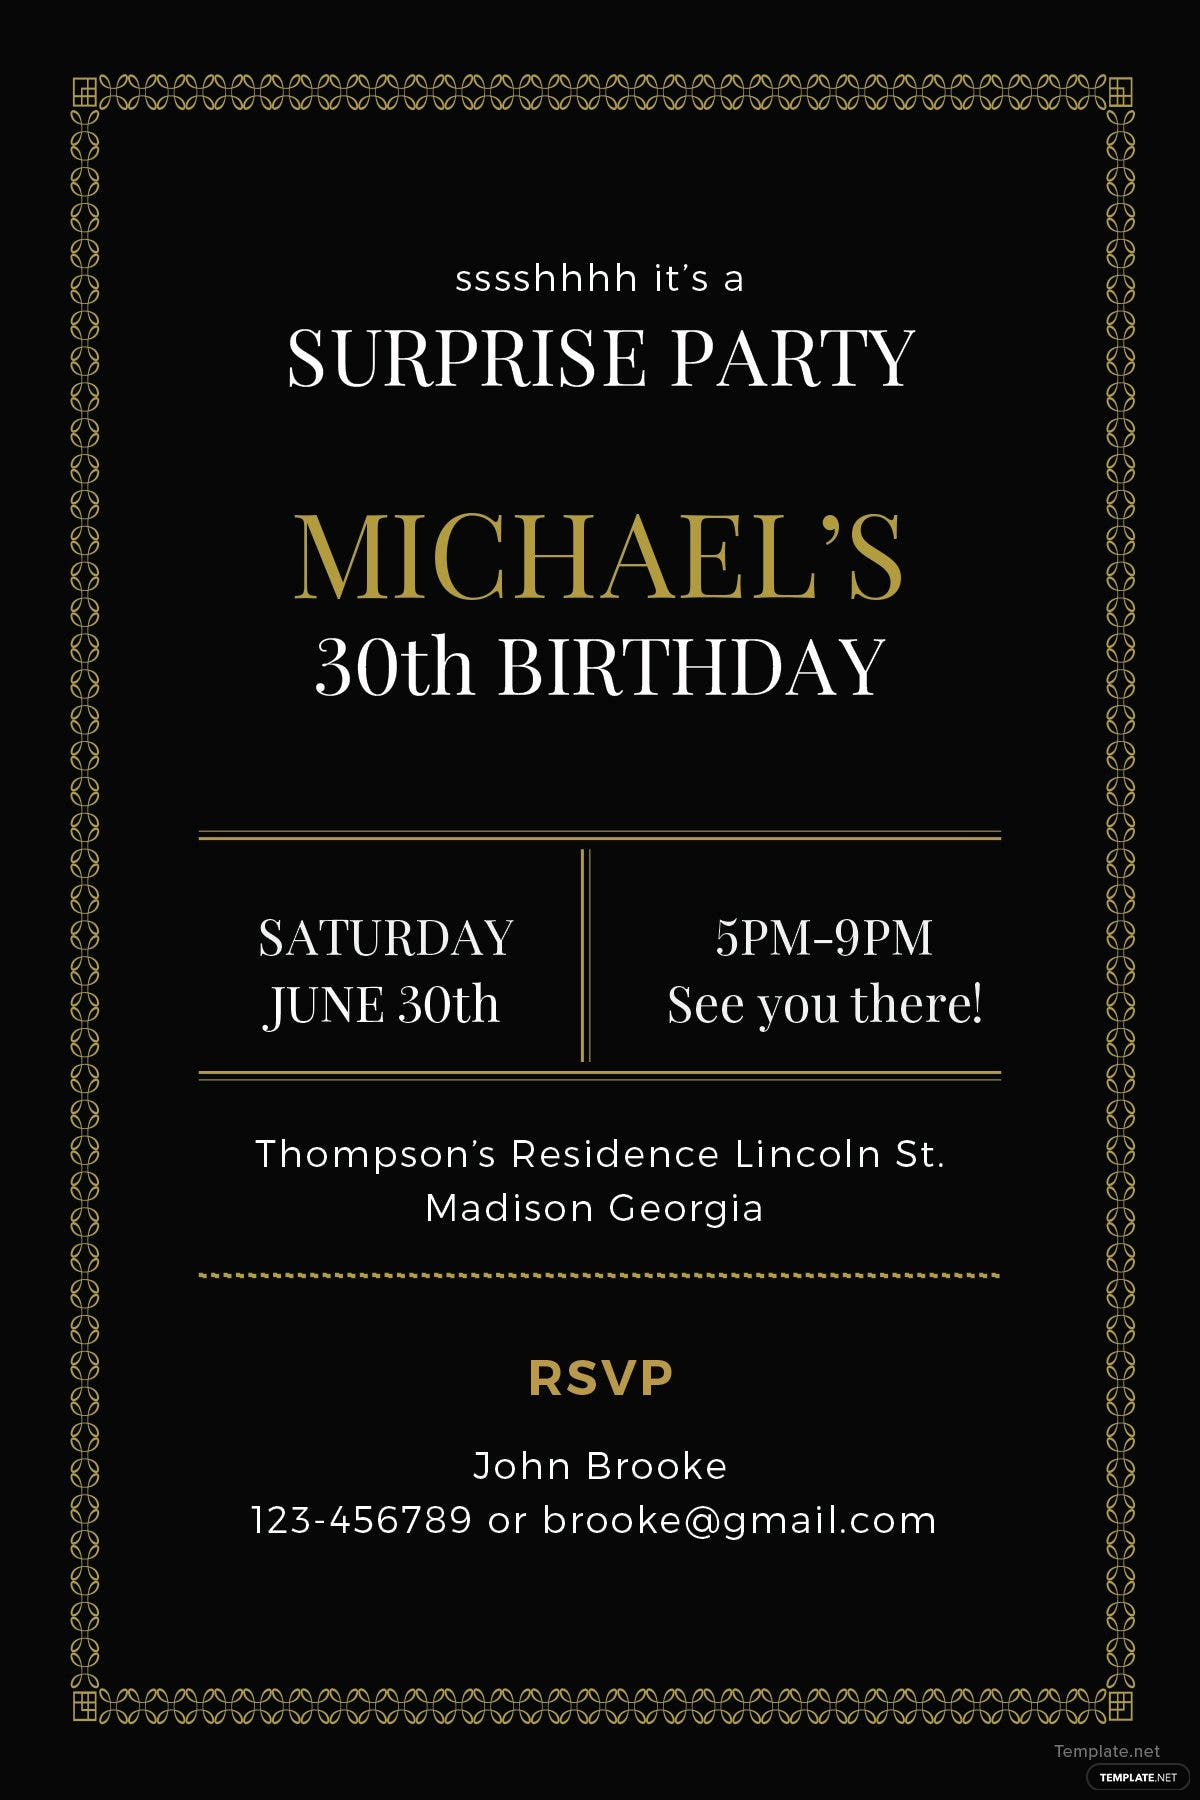 free surprise party invitation template in adobe illustrator